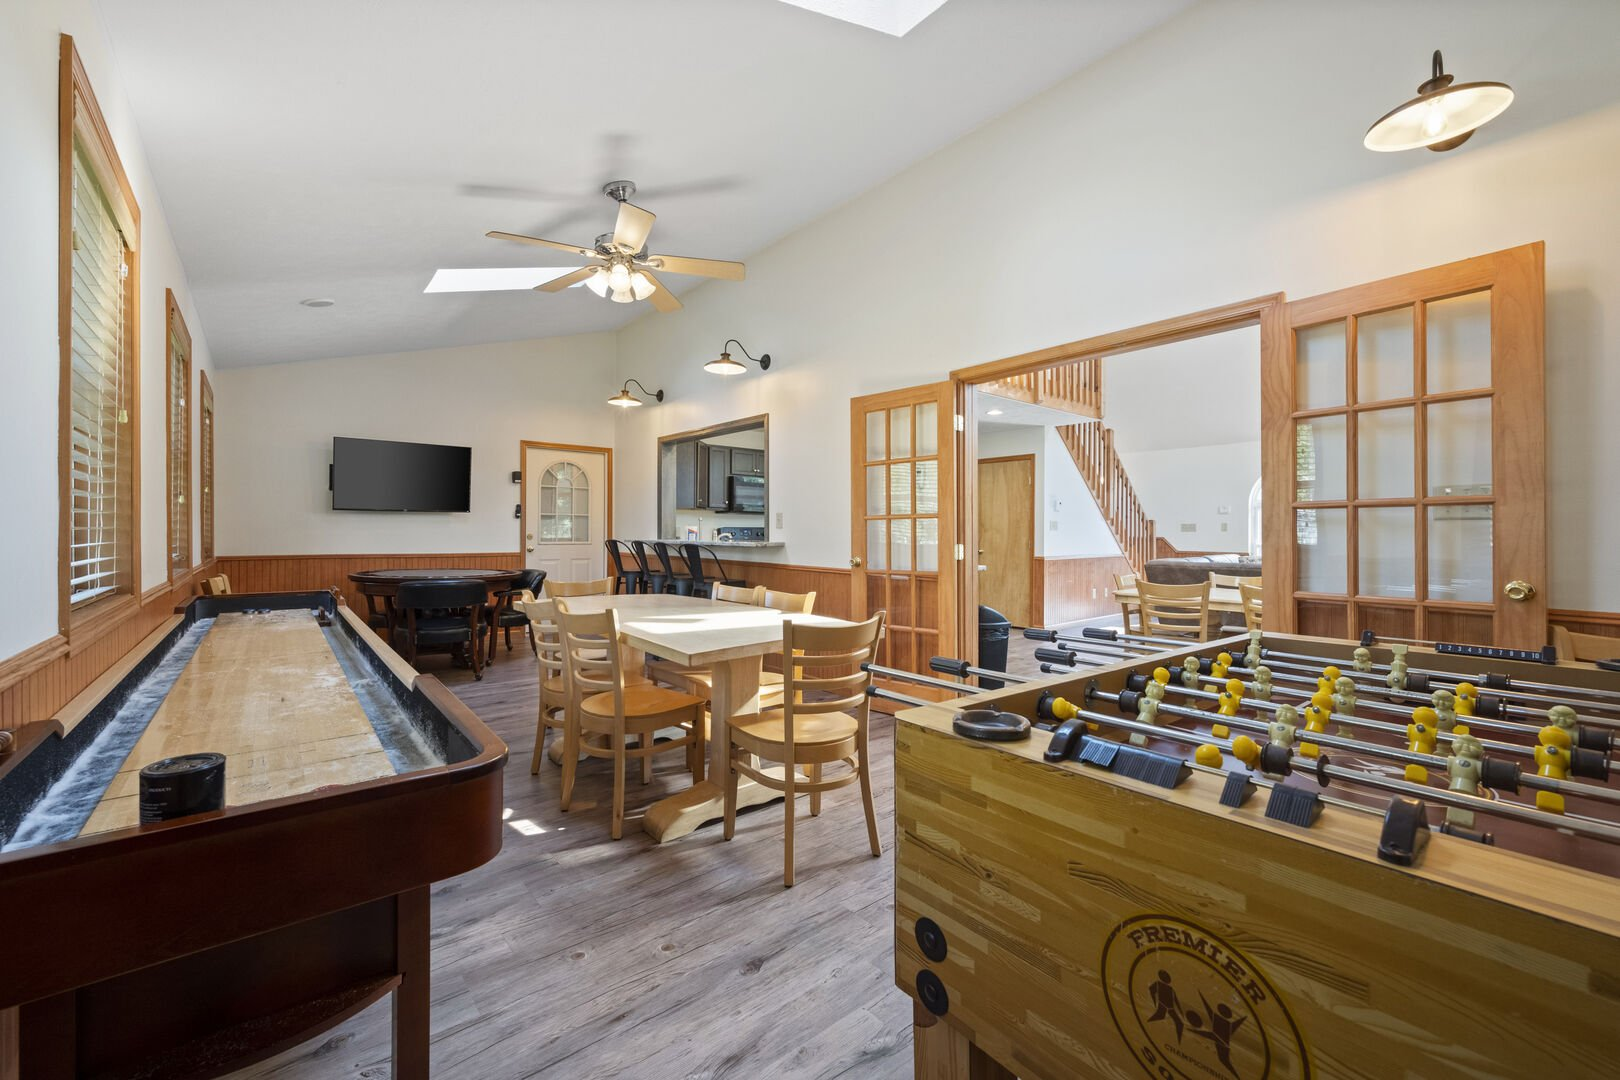 Shuffleboard table and nearby foosball table